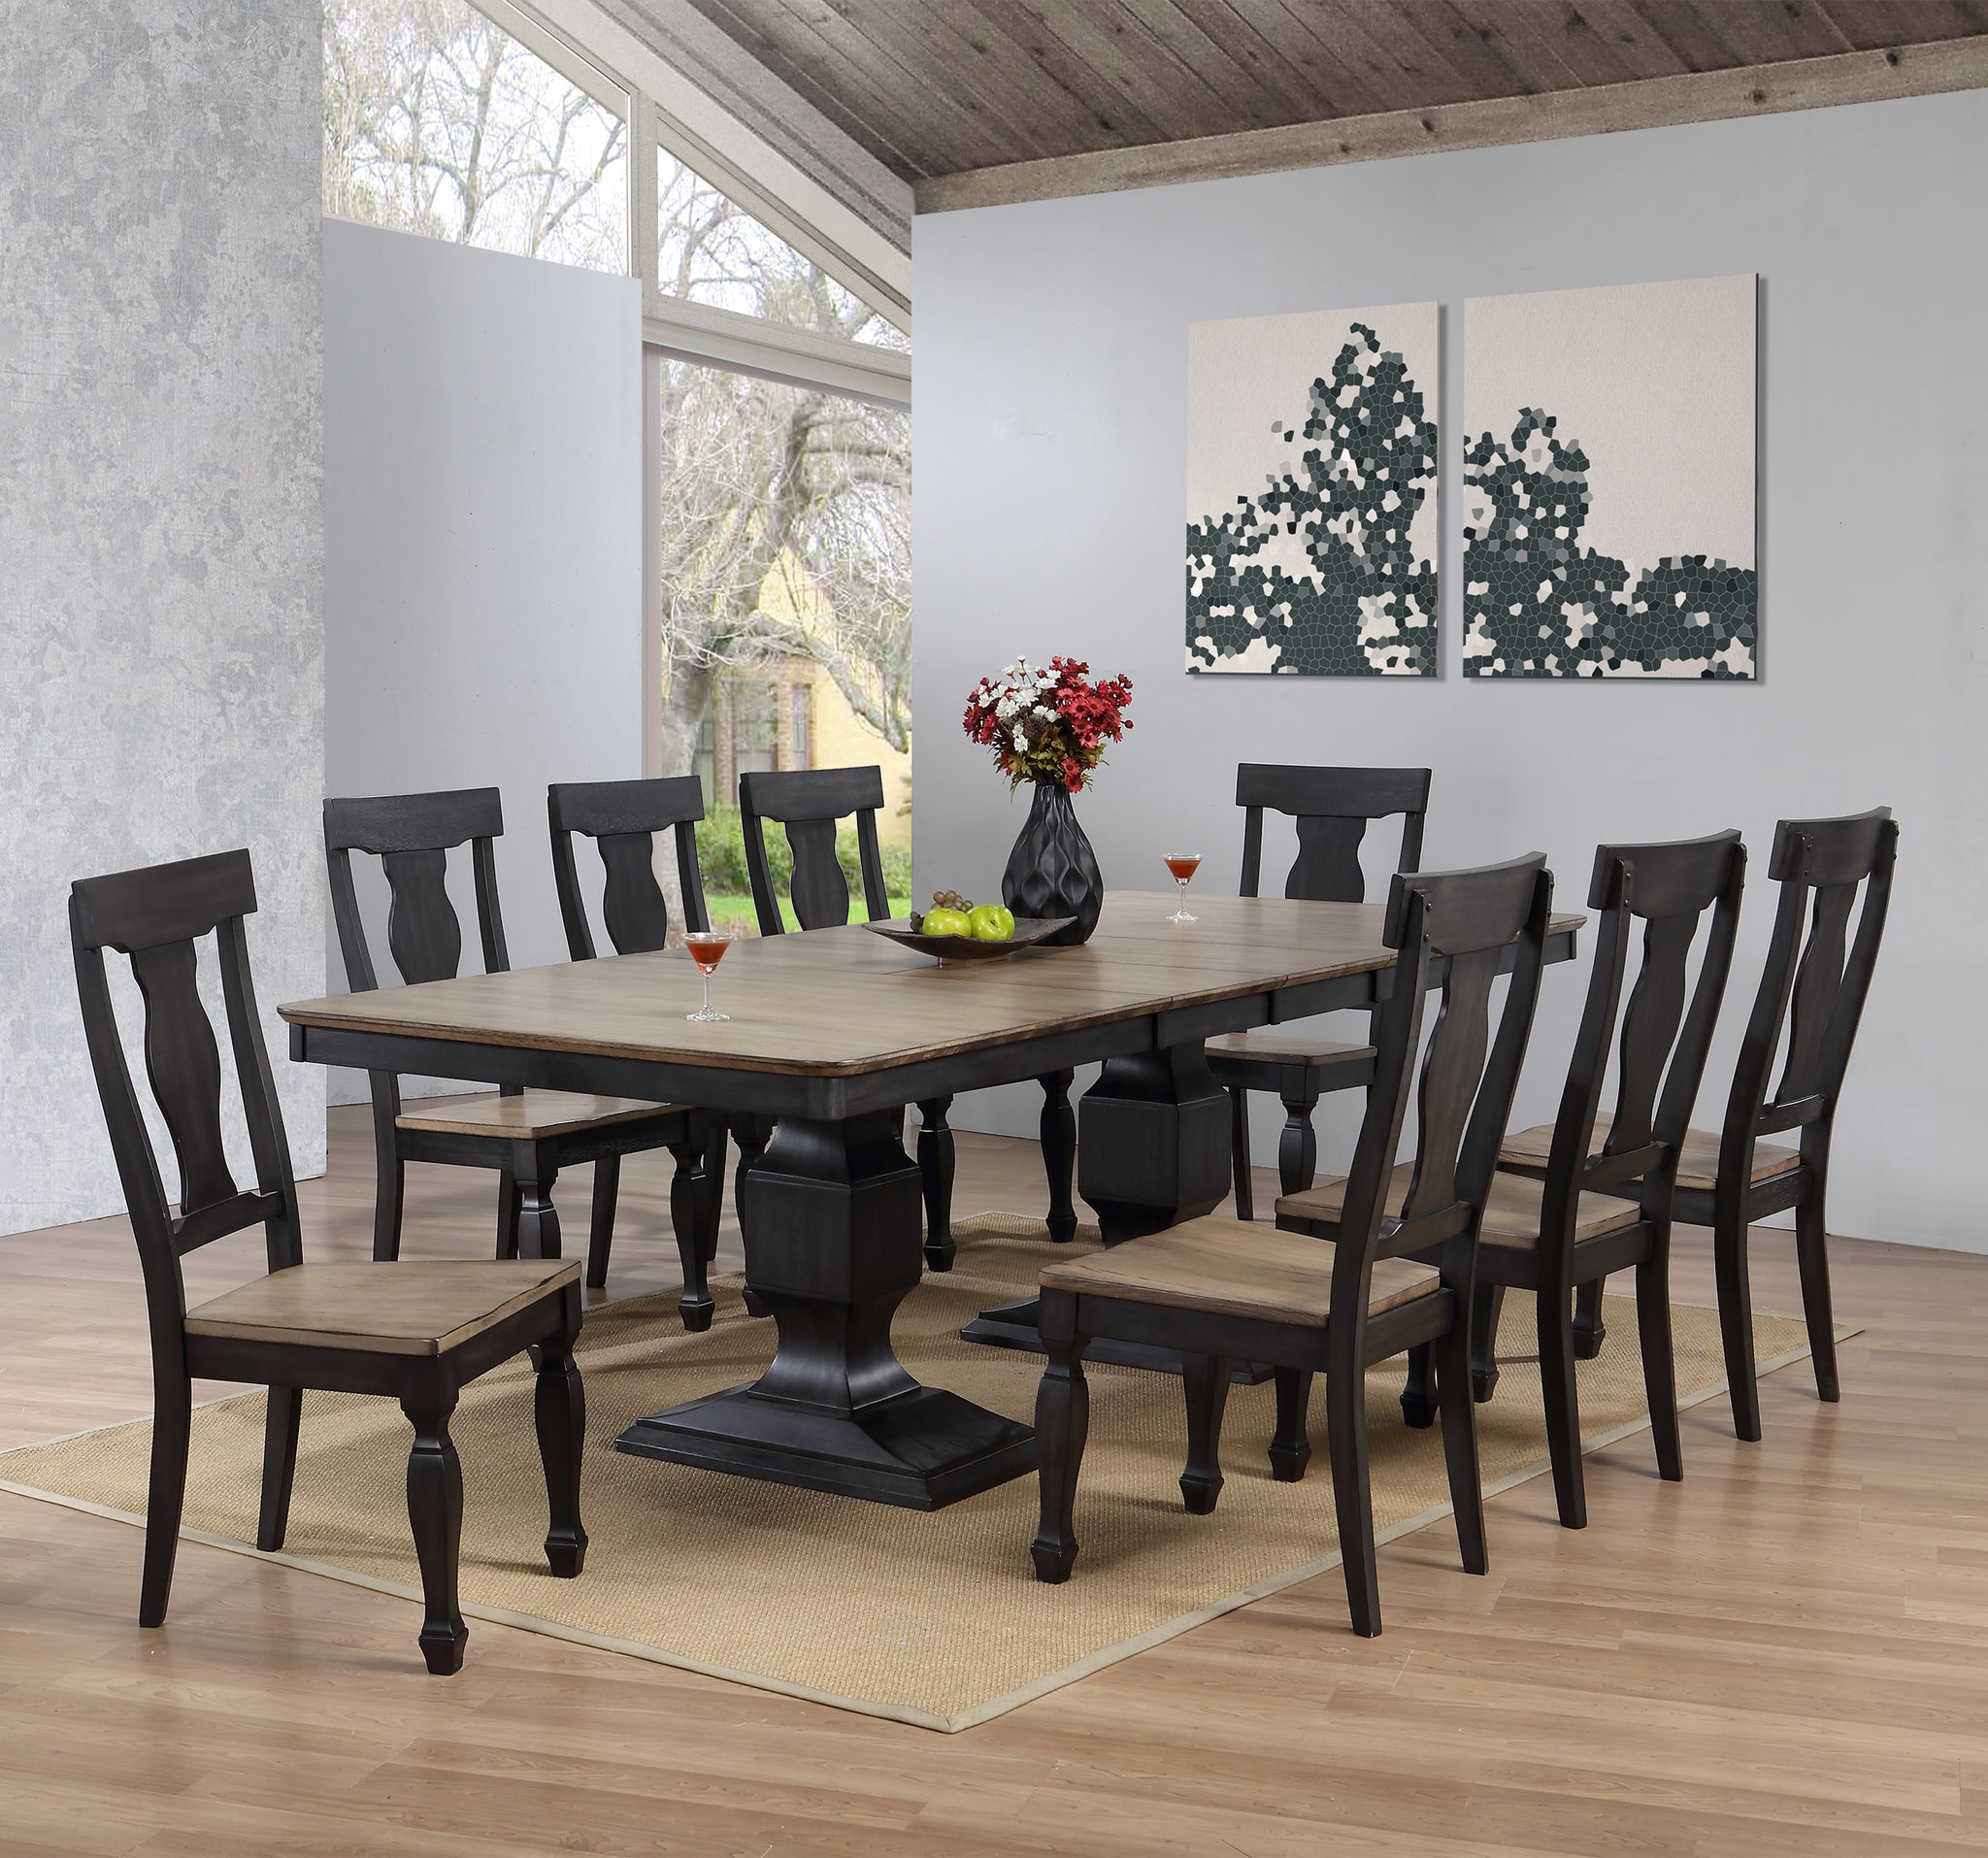 Charcoal Oak Wood Transitional Rectangle Dining Room Table Chairs With Wine Rack Buffet